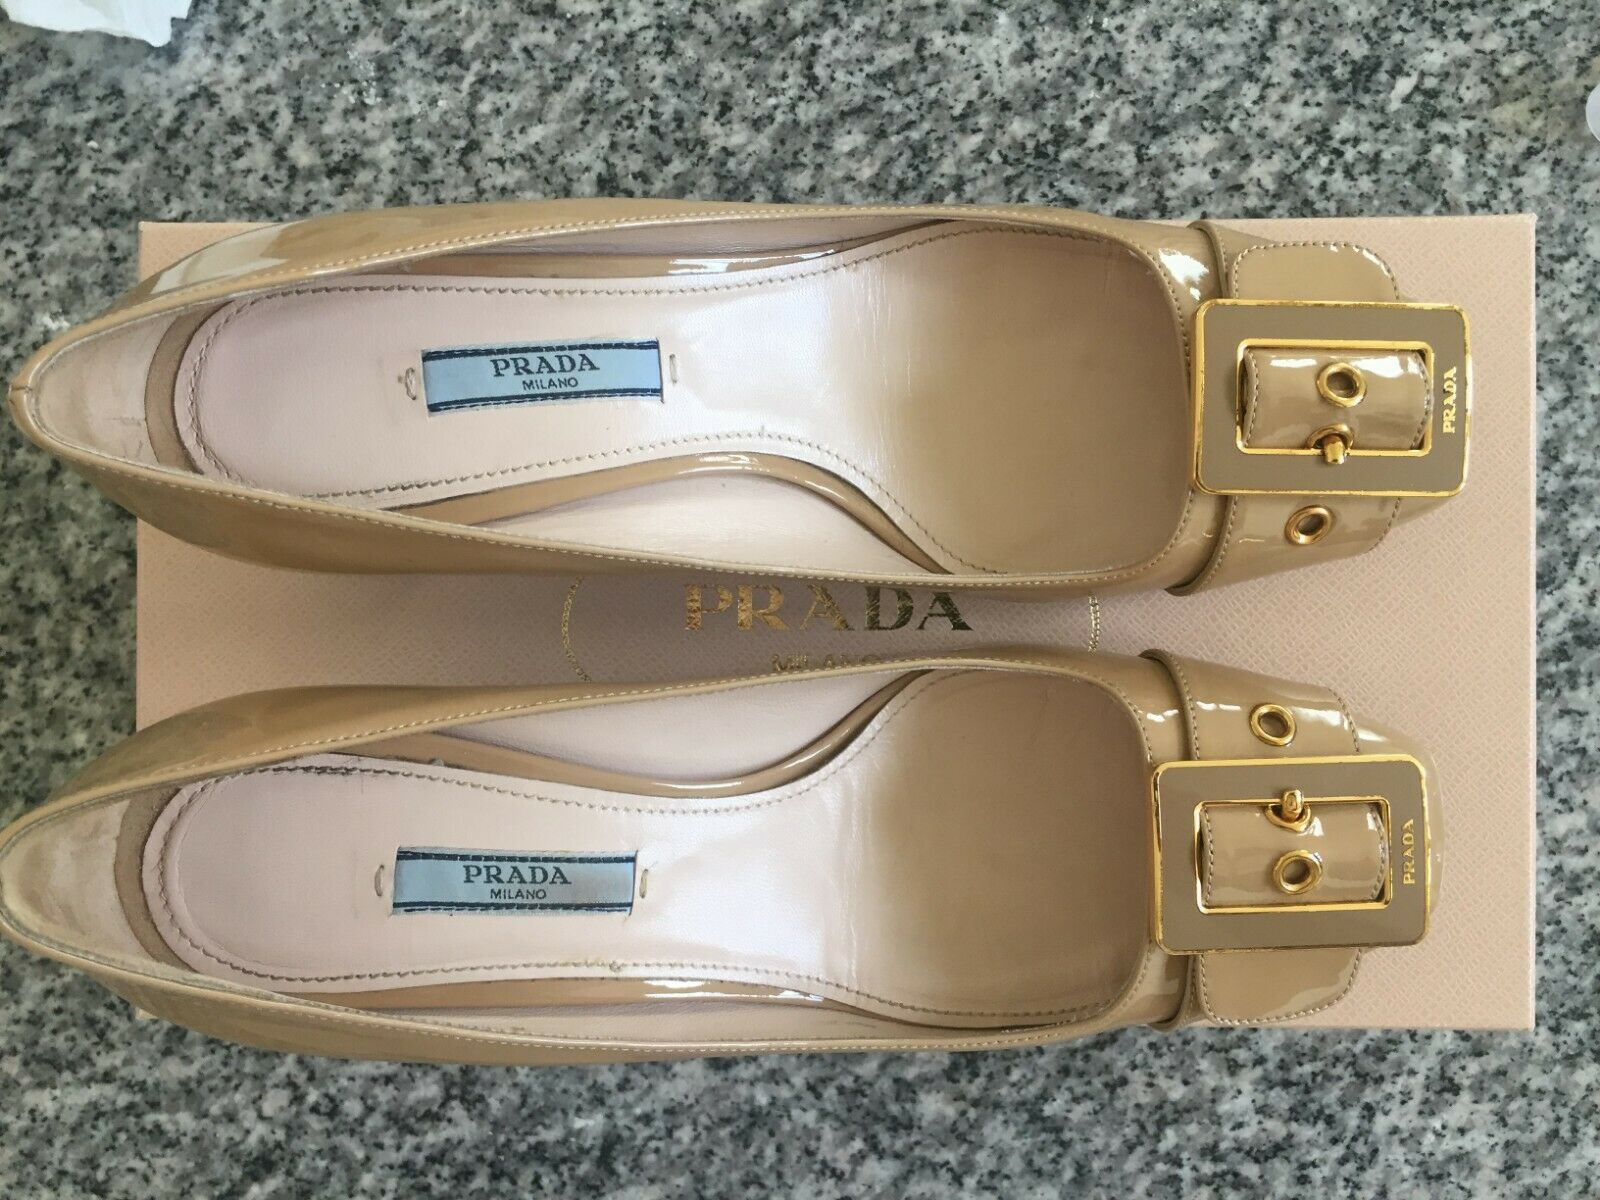 Prada shoes Beige Patent leather leather leather 8 1 2 US, French 38 1  2 worn twice aedc9d